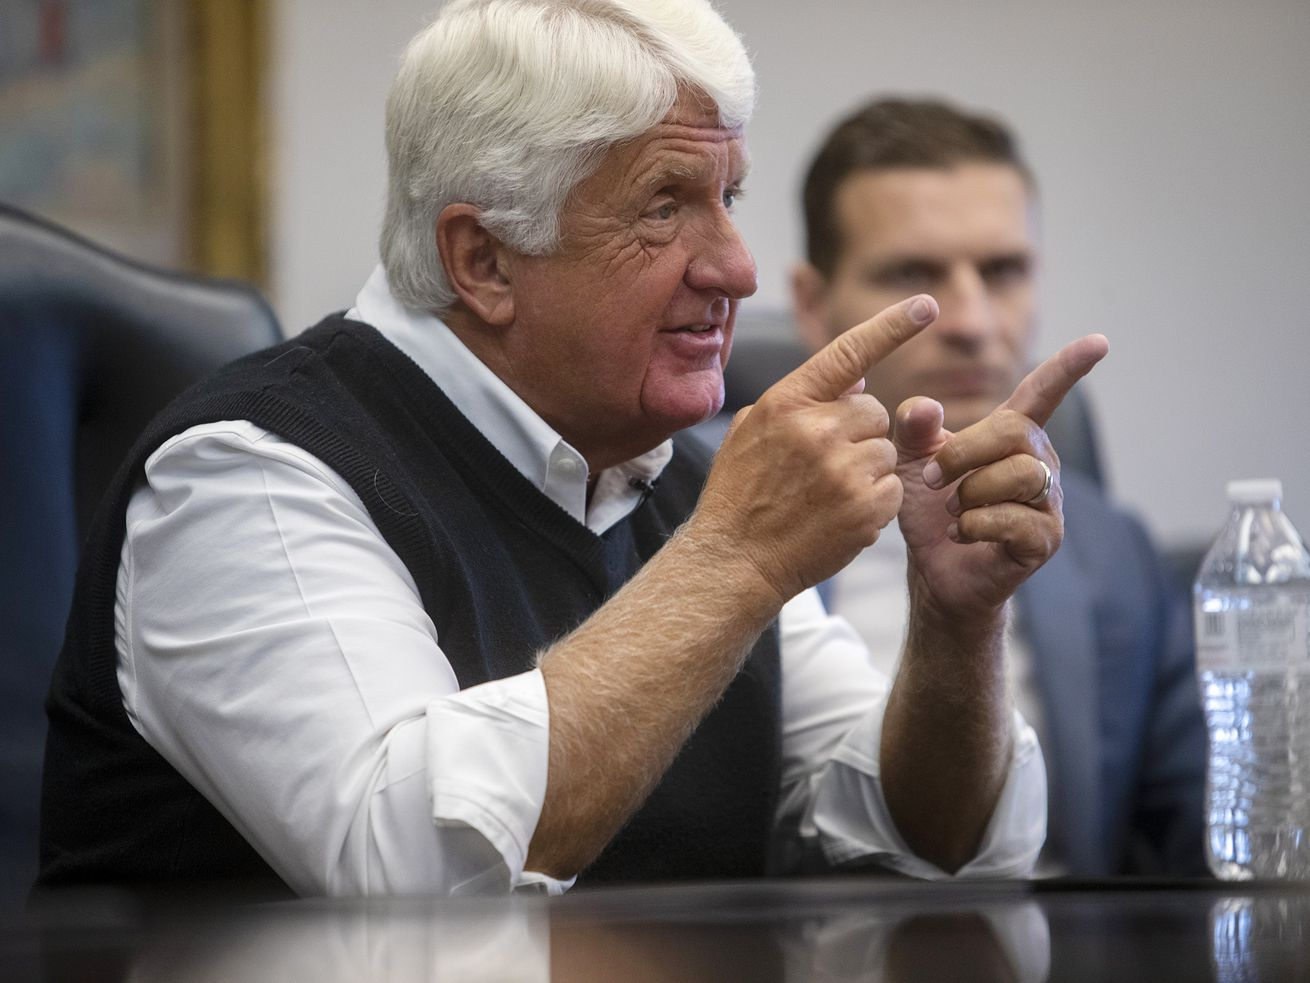 Rob Bishop resigns from Utah redistricting commission over public lands issues, urban-rural split